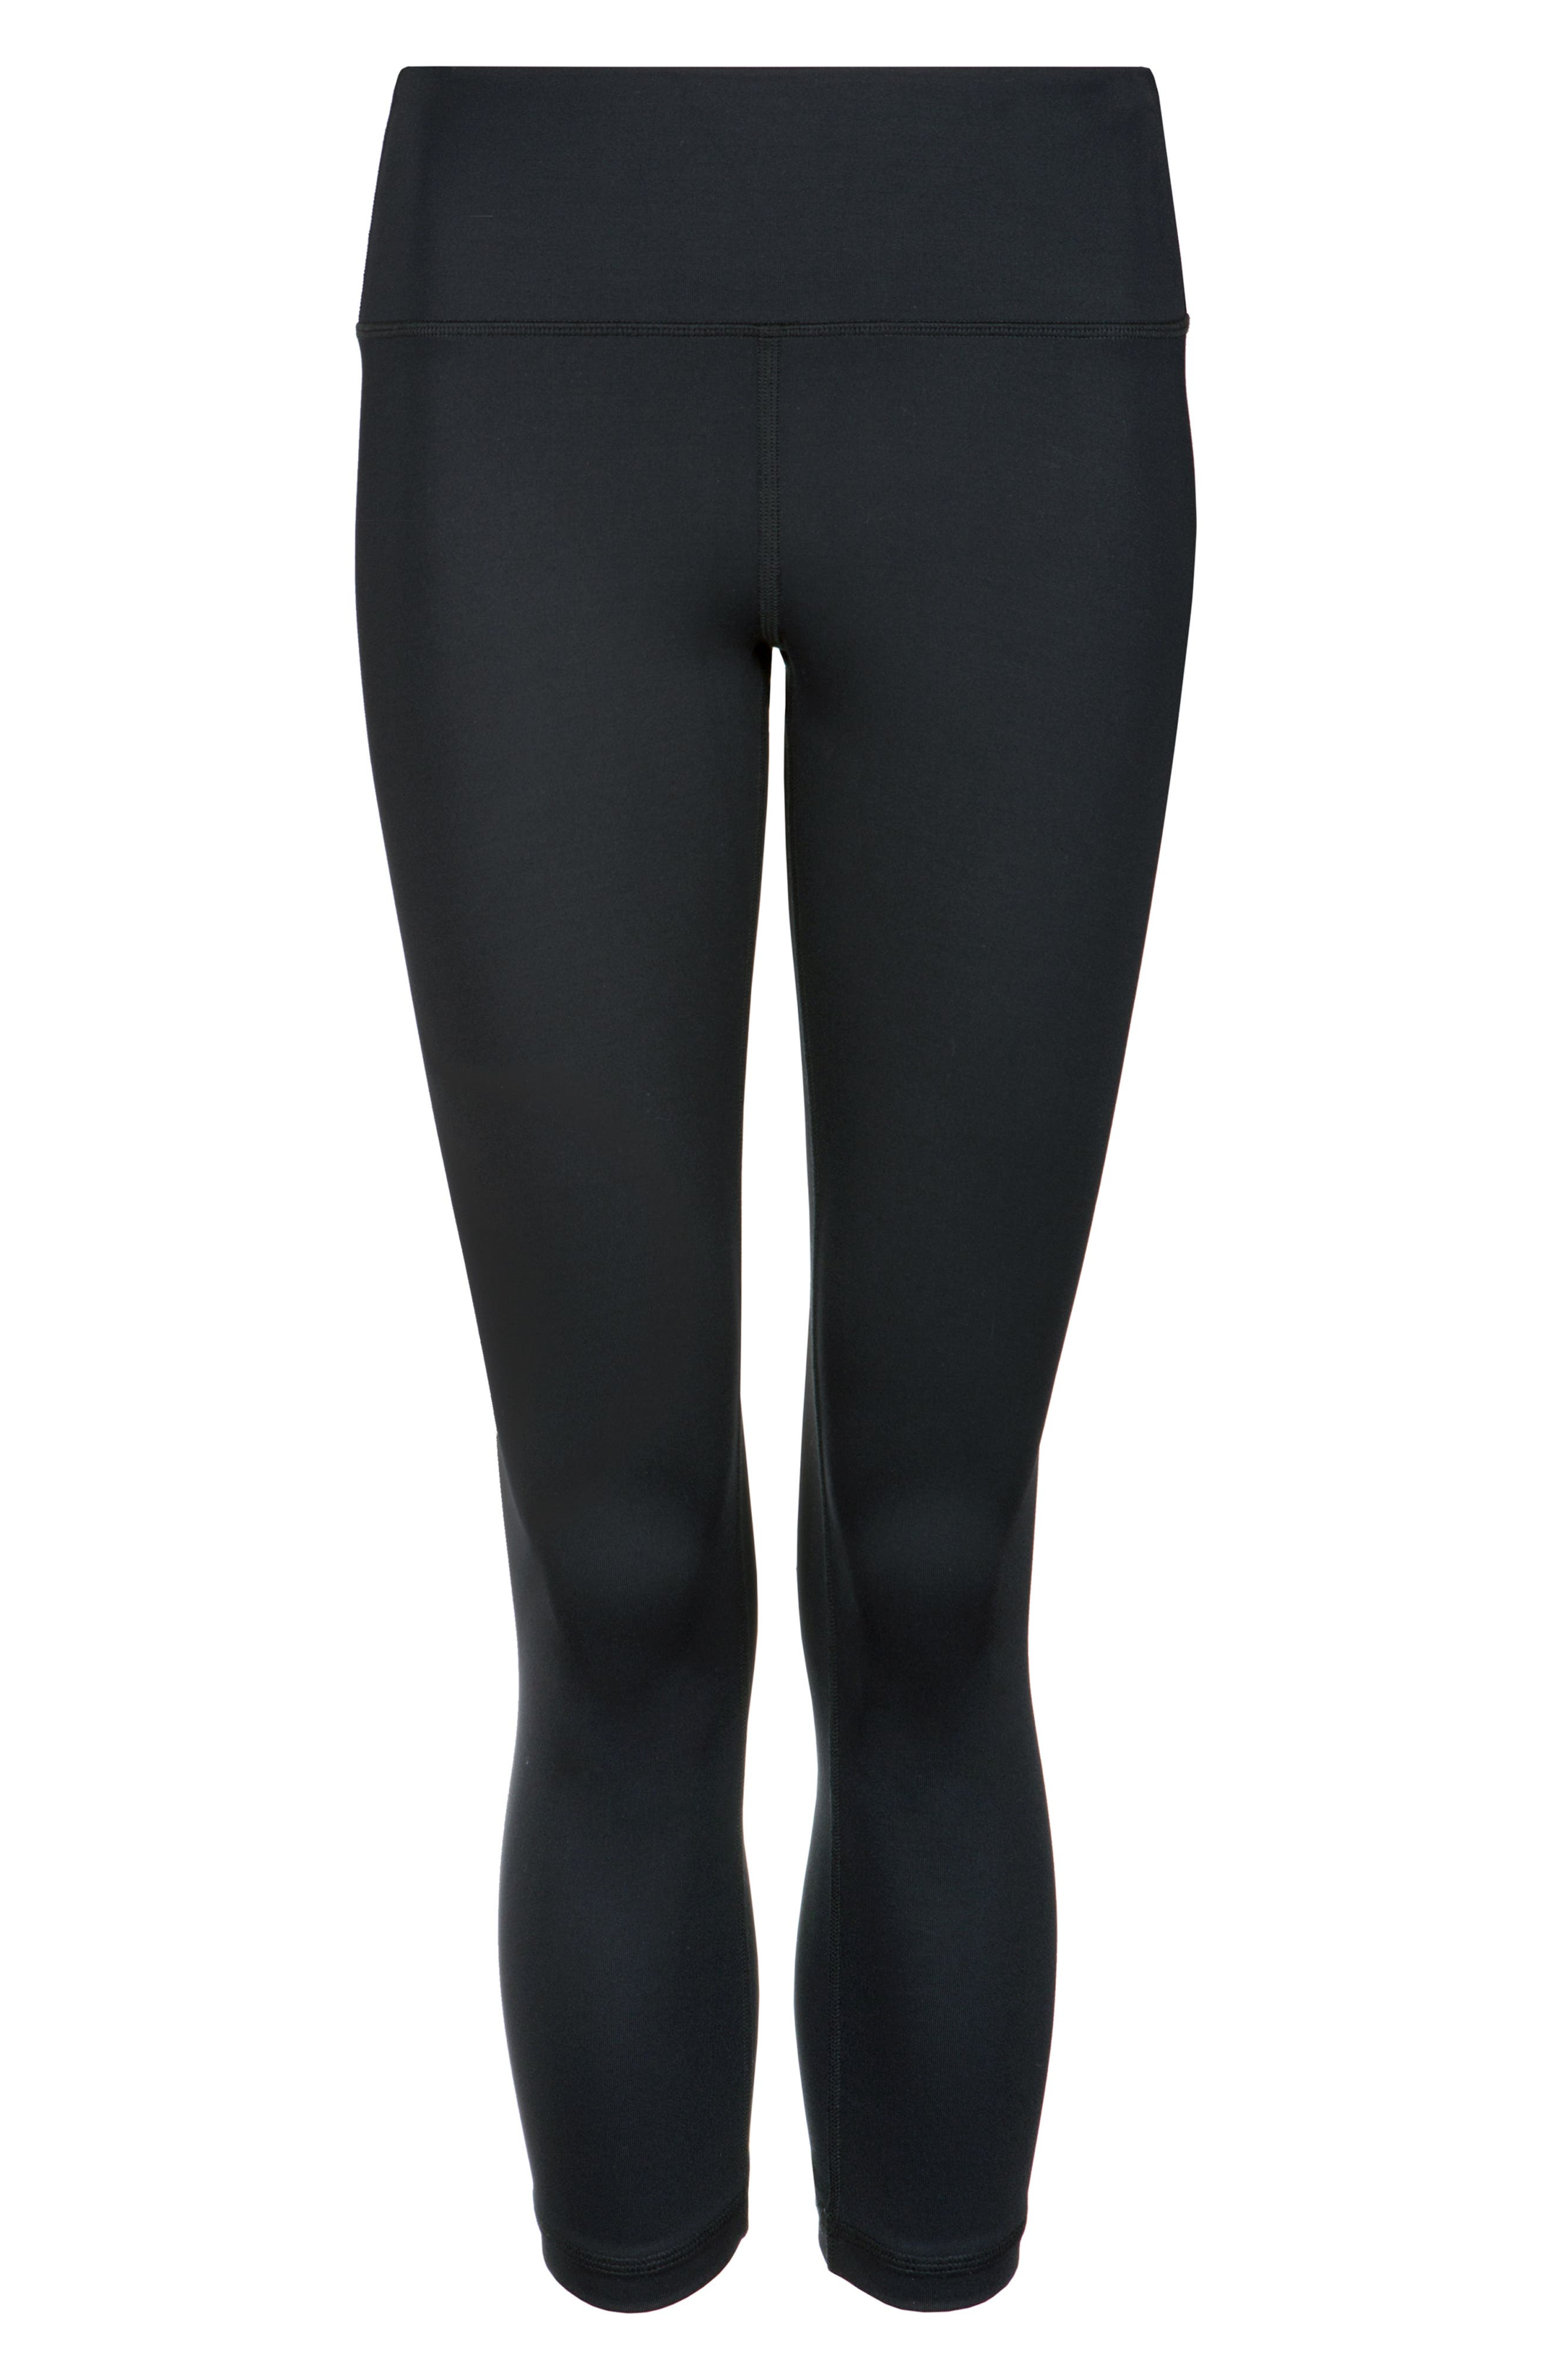 LIVELY, The Active High Waist Crop Leggings, Alternate thumbnail 5, color, JET BLACK